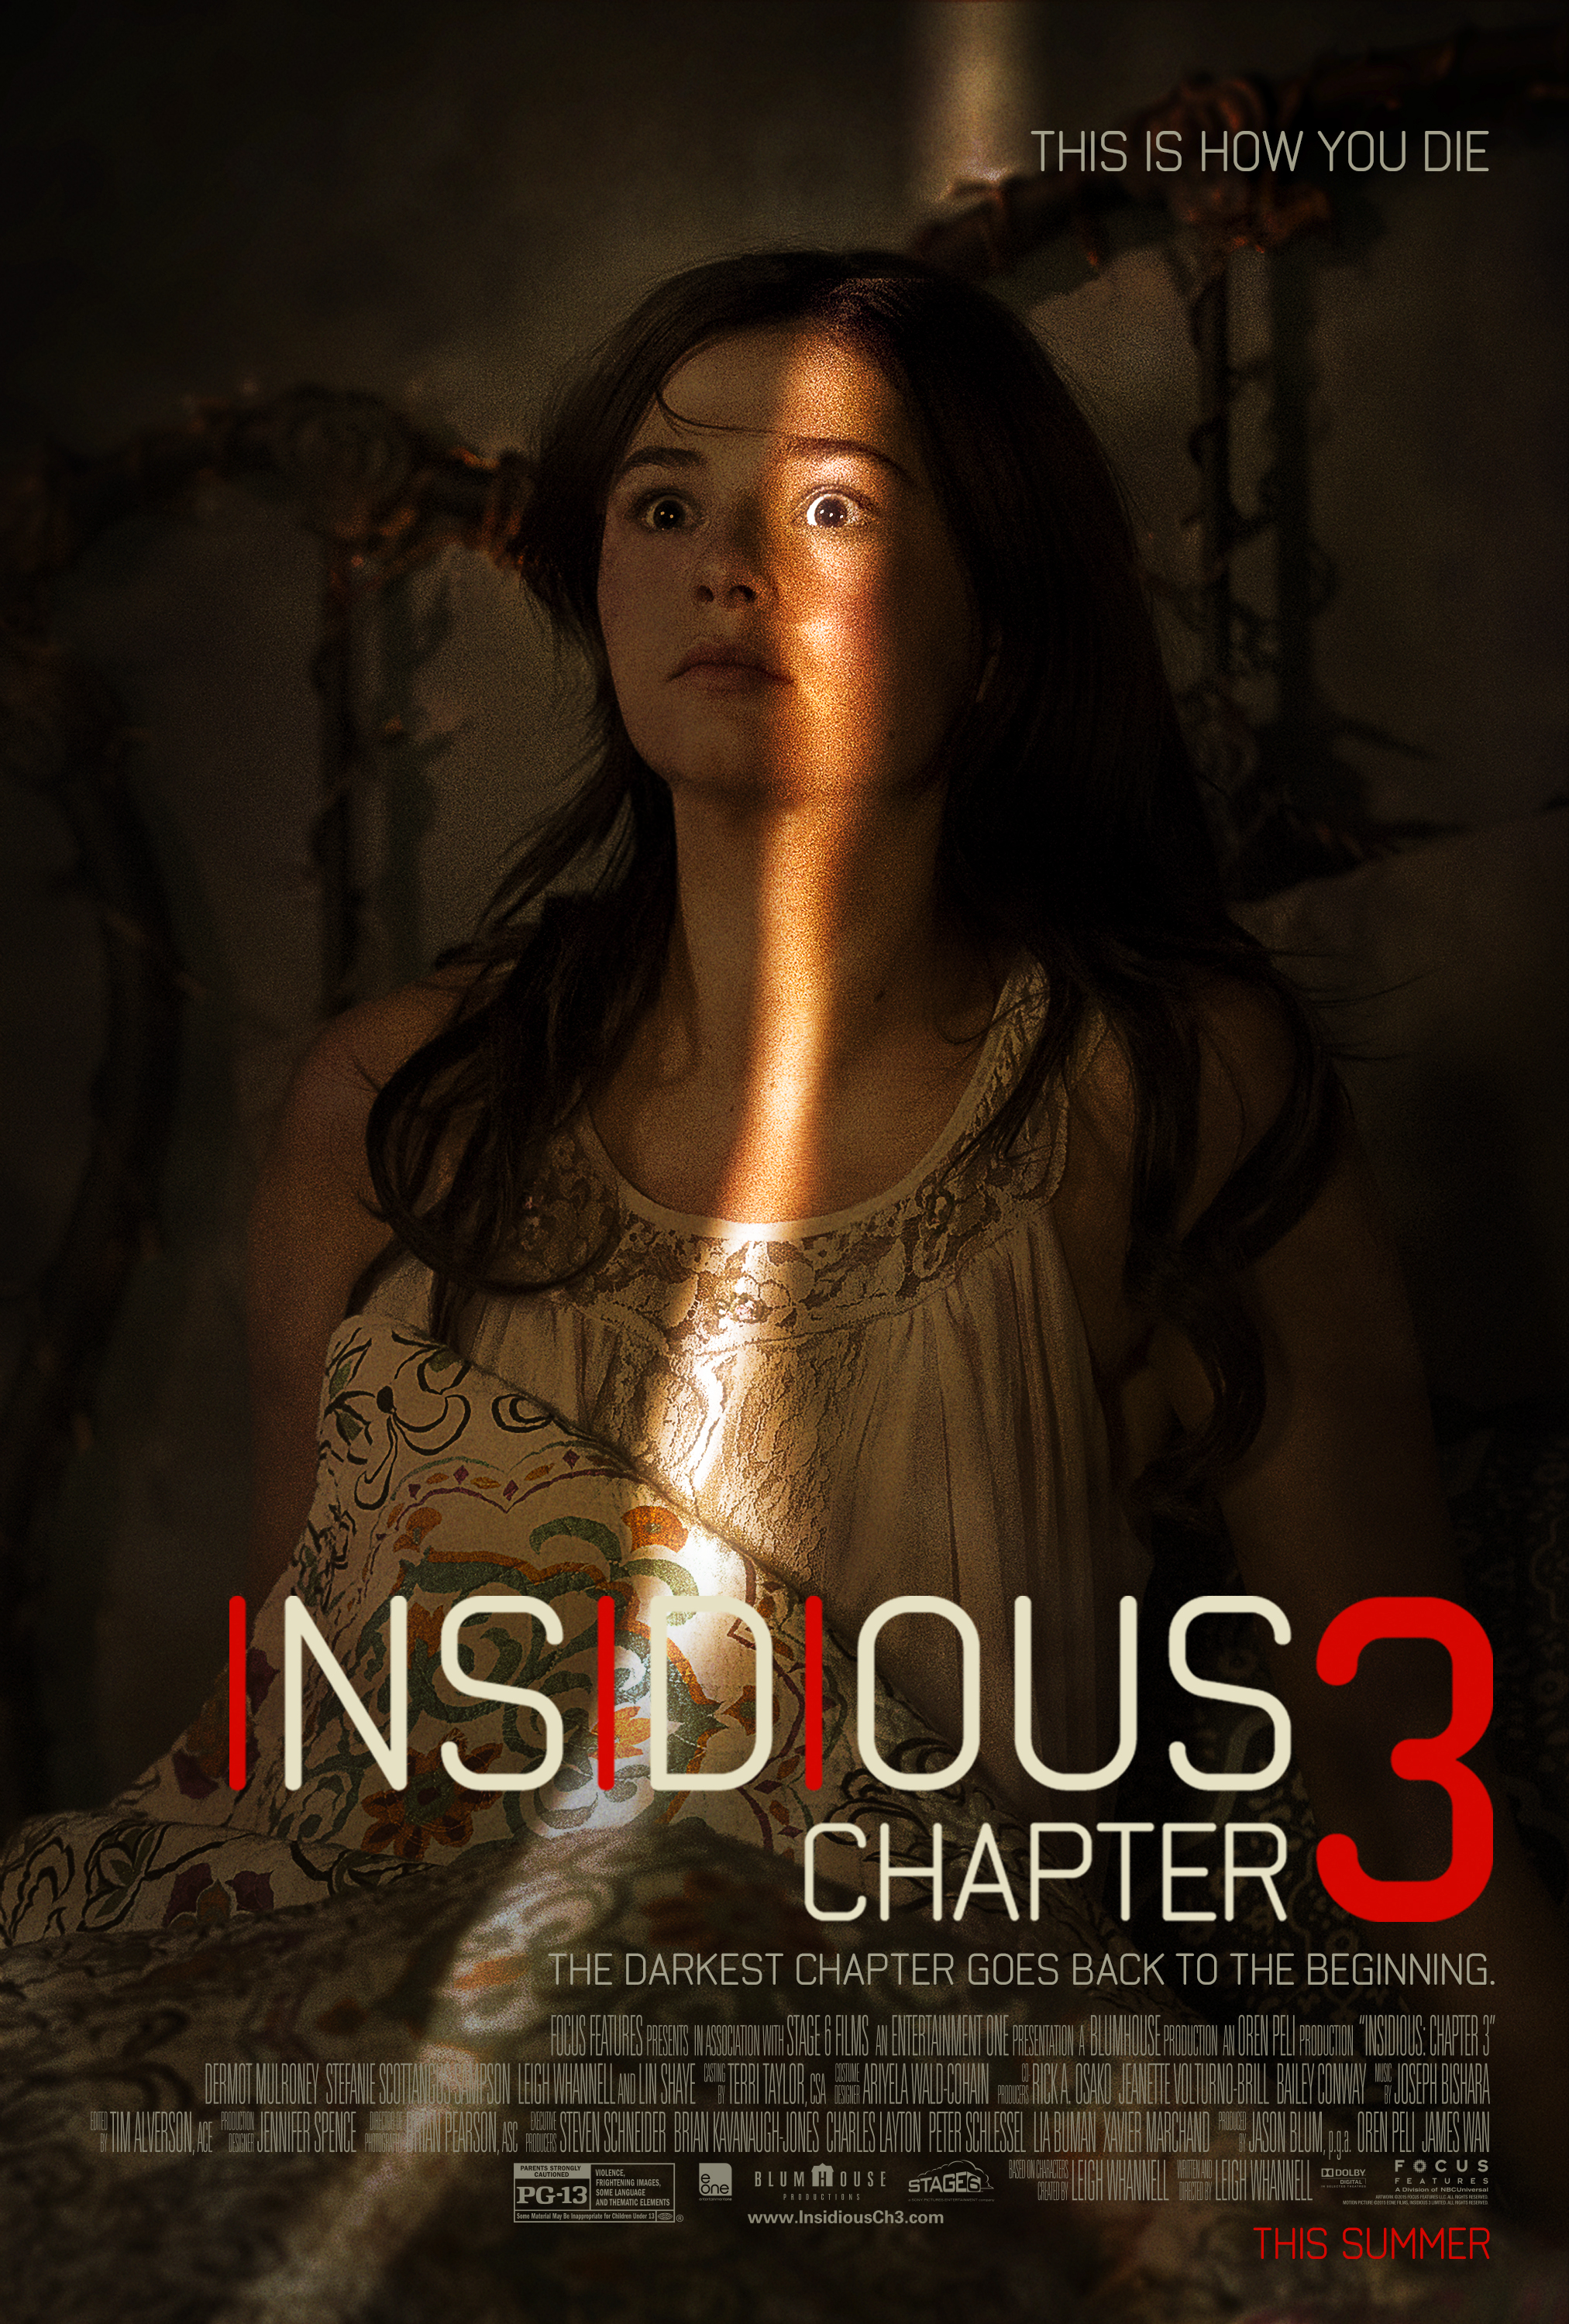 Insidious Chapter 3 film review: back to where it began